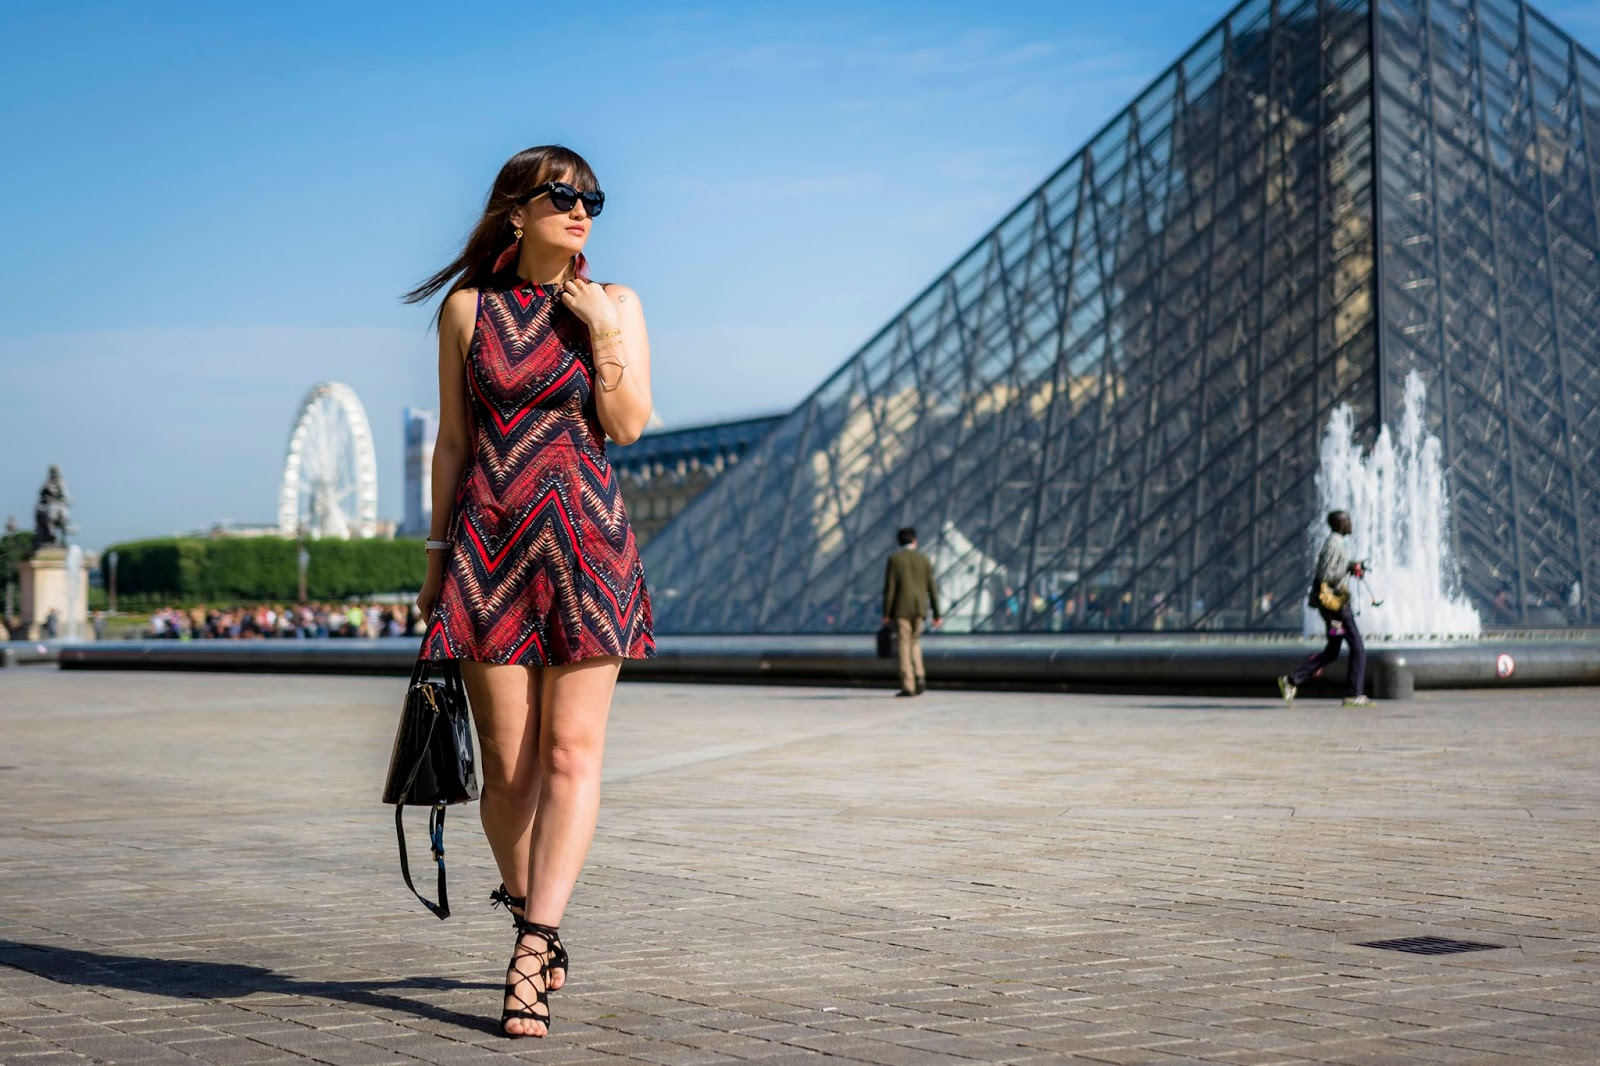 Fashion photography, style, meet me in paree, tally weijl summer collection, fashion blogger